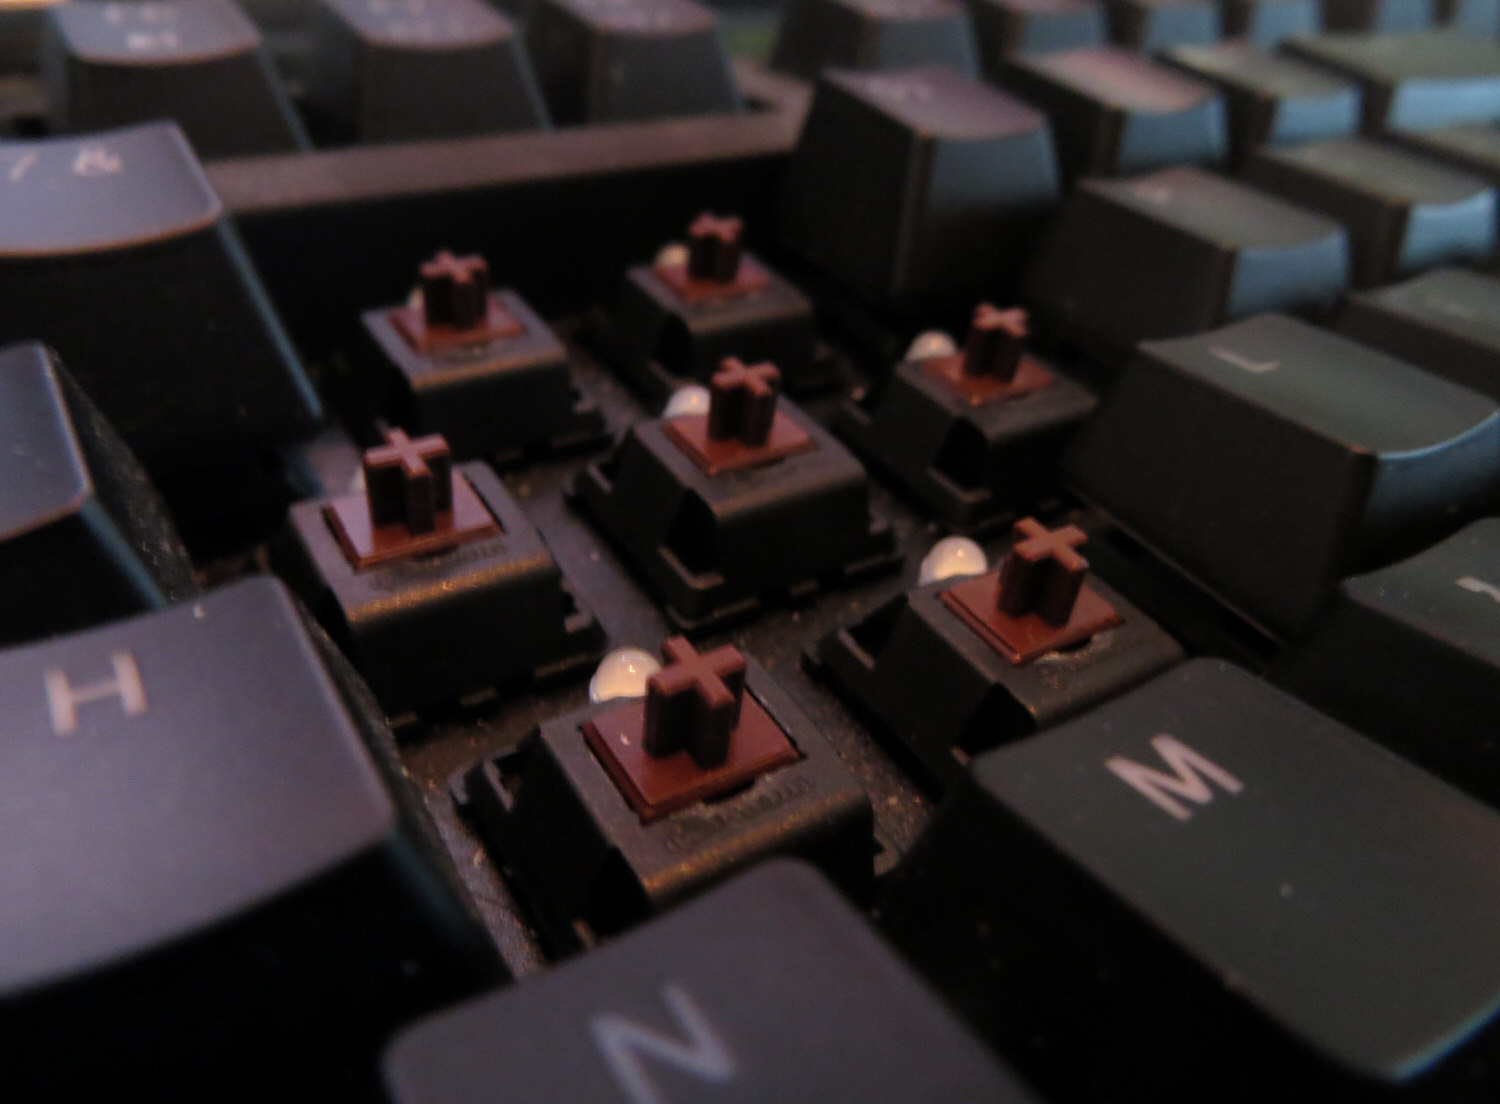 Best Cherry Mx Mechanical Key Switch For Gamers And Typists